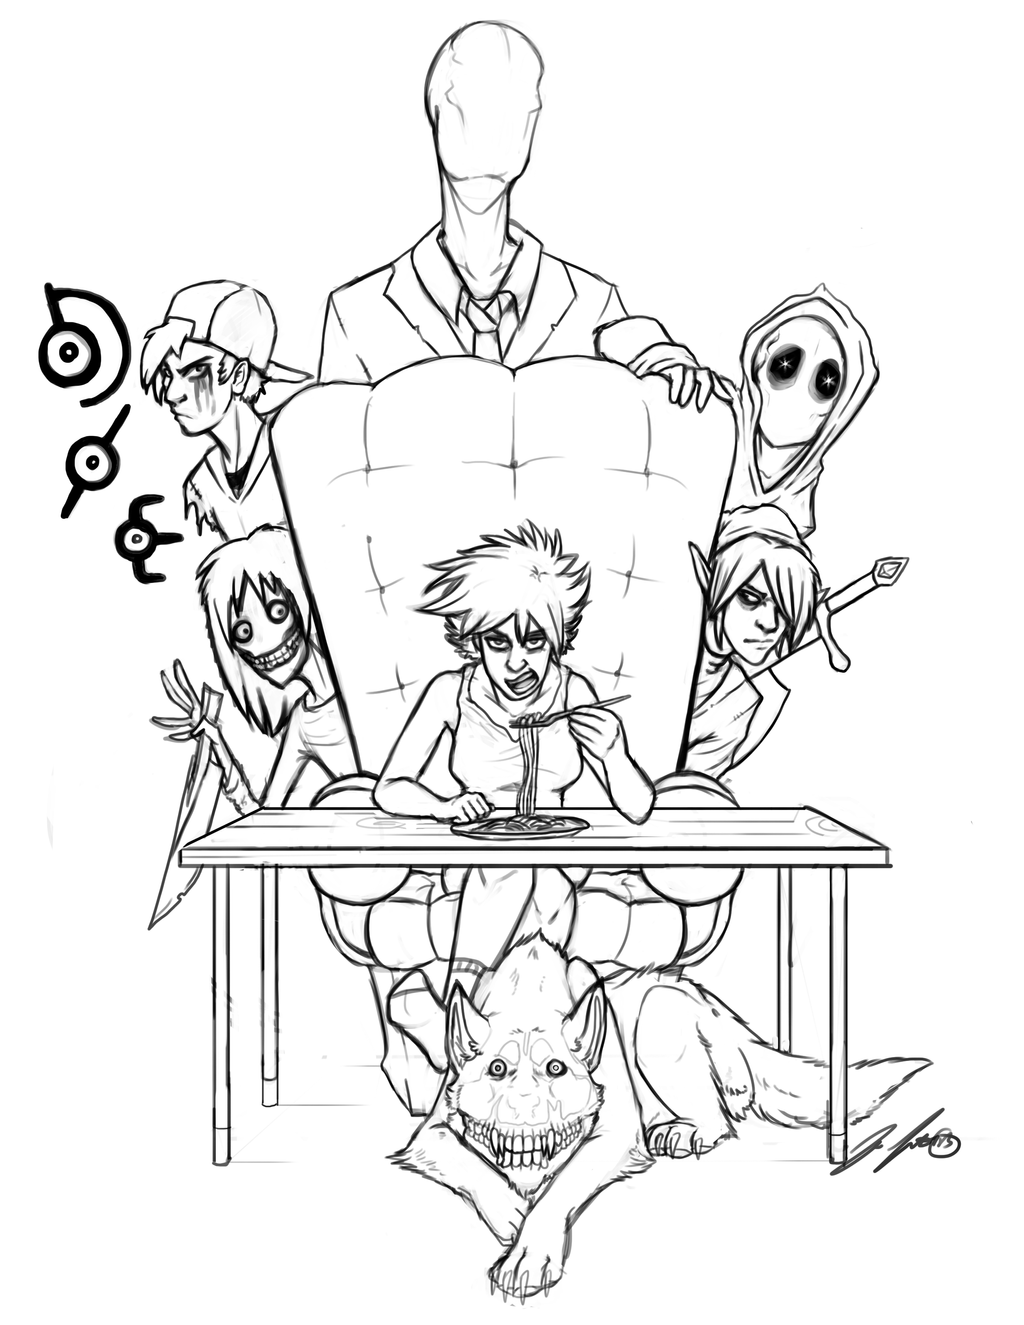 creepypasta coloring pages online - photo#13